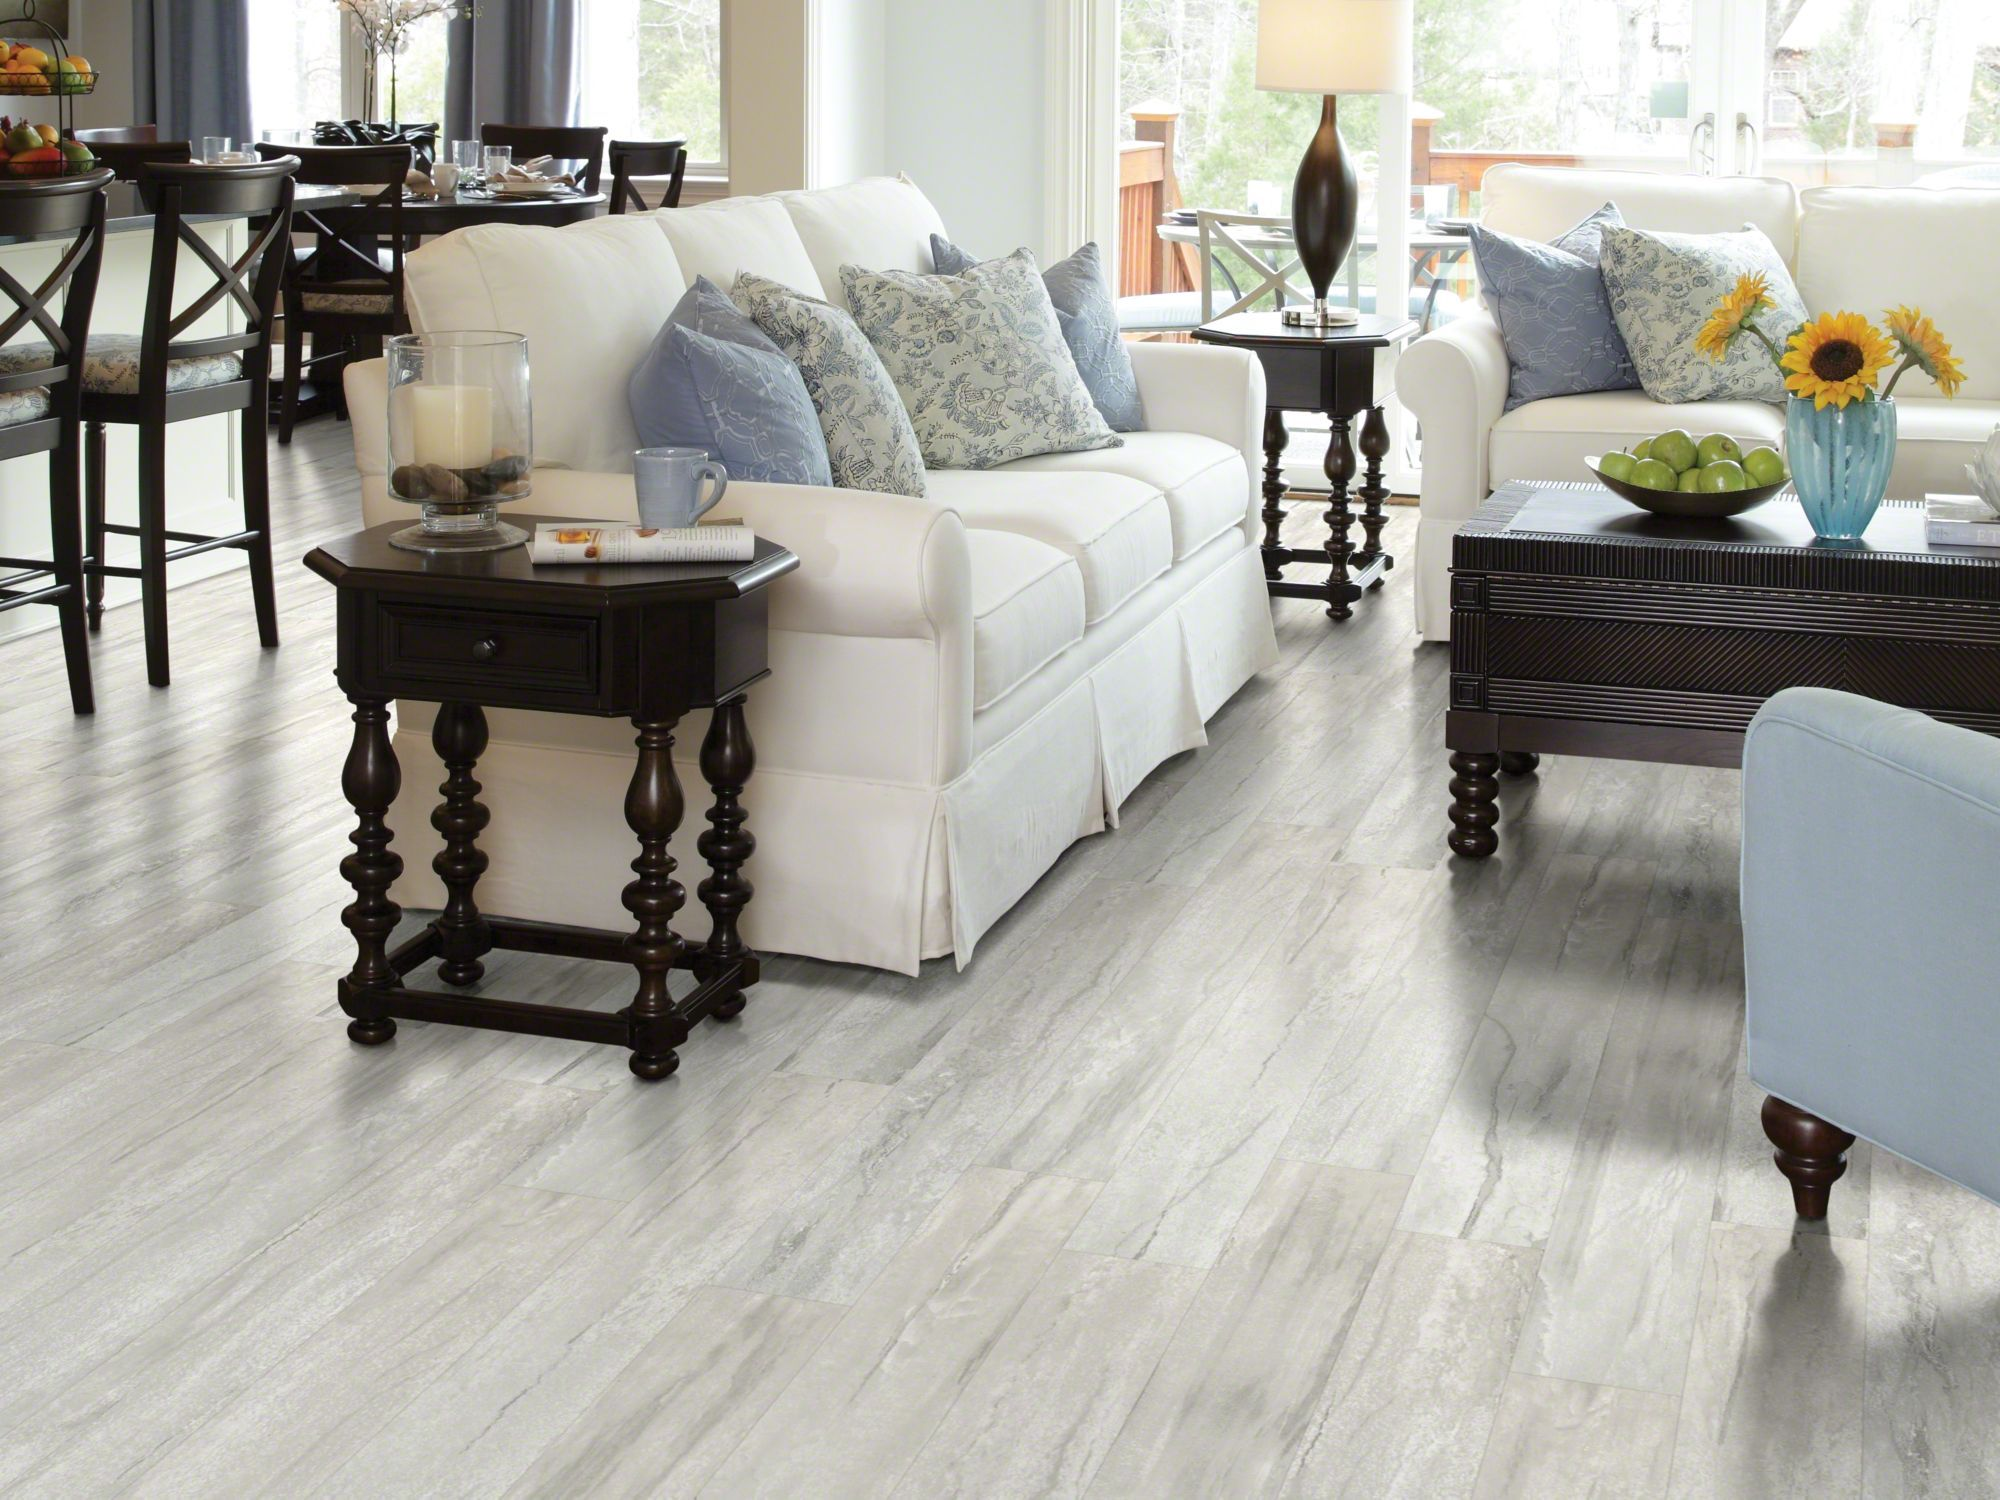 CLASSICO PLANK - Room View   River now   Pinterest   Plank, Room and ...